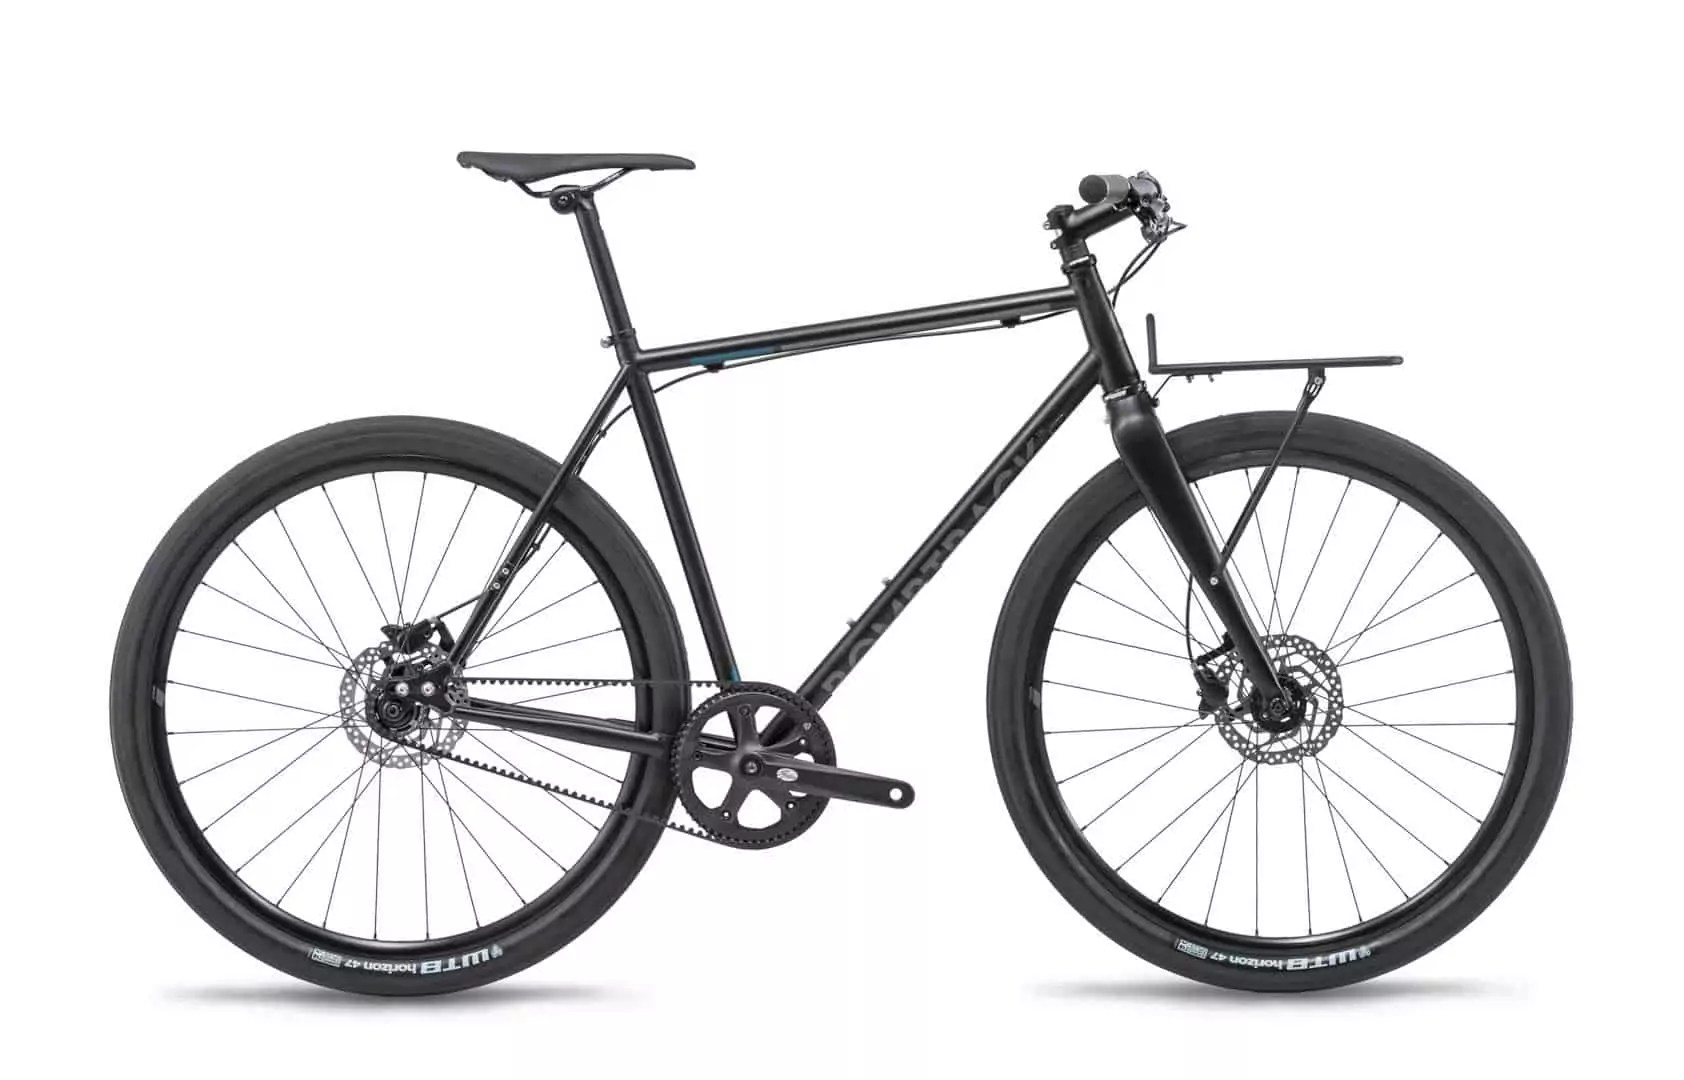 The Outlaw by BOMBTRACK: The Most Understated and Stylish Bike